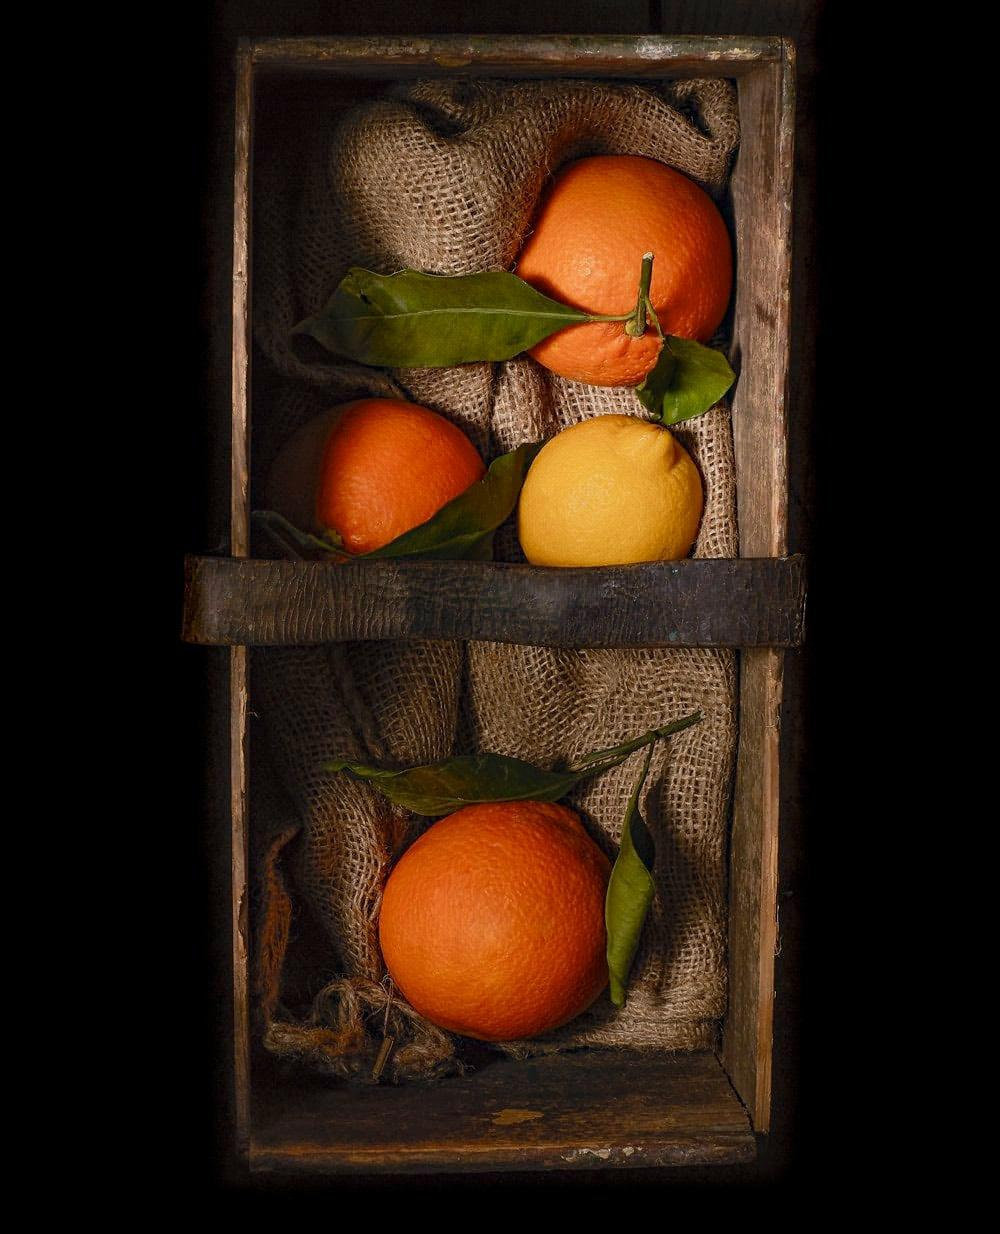 CITRUS FRUITS IN OLD WEATHERED BOX